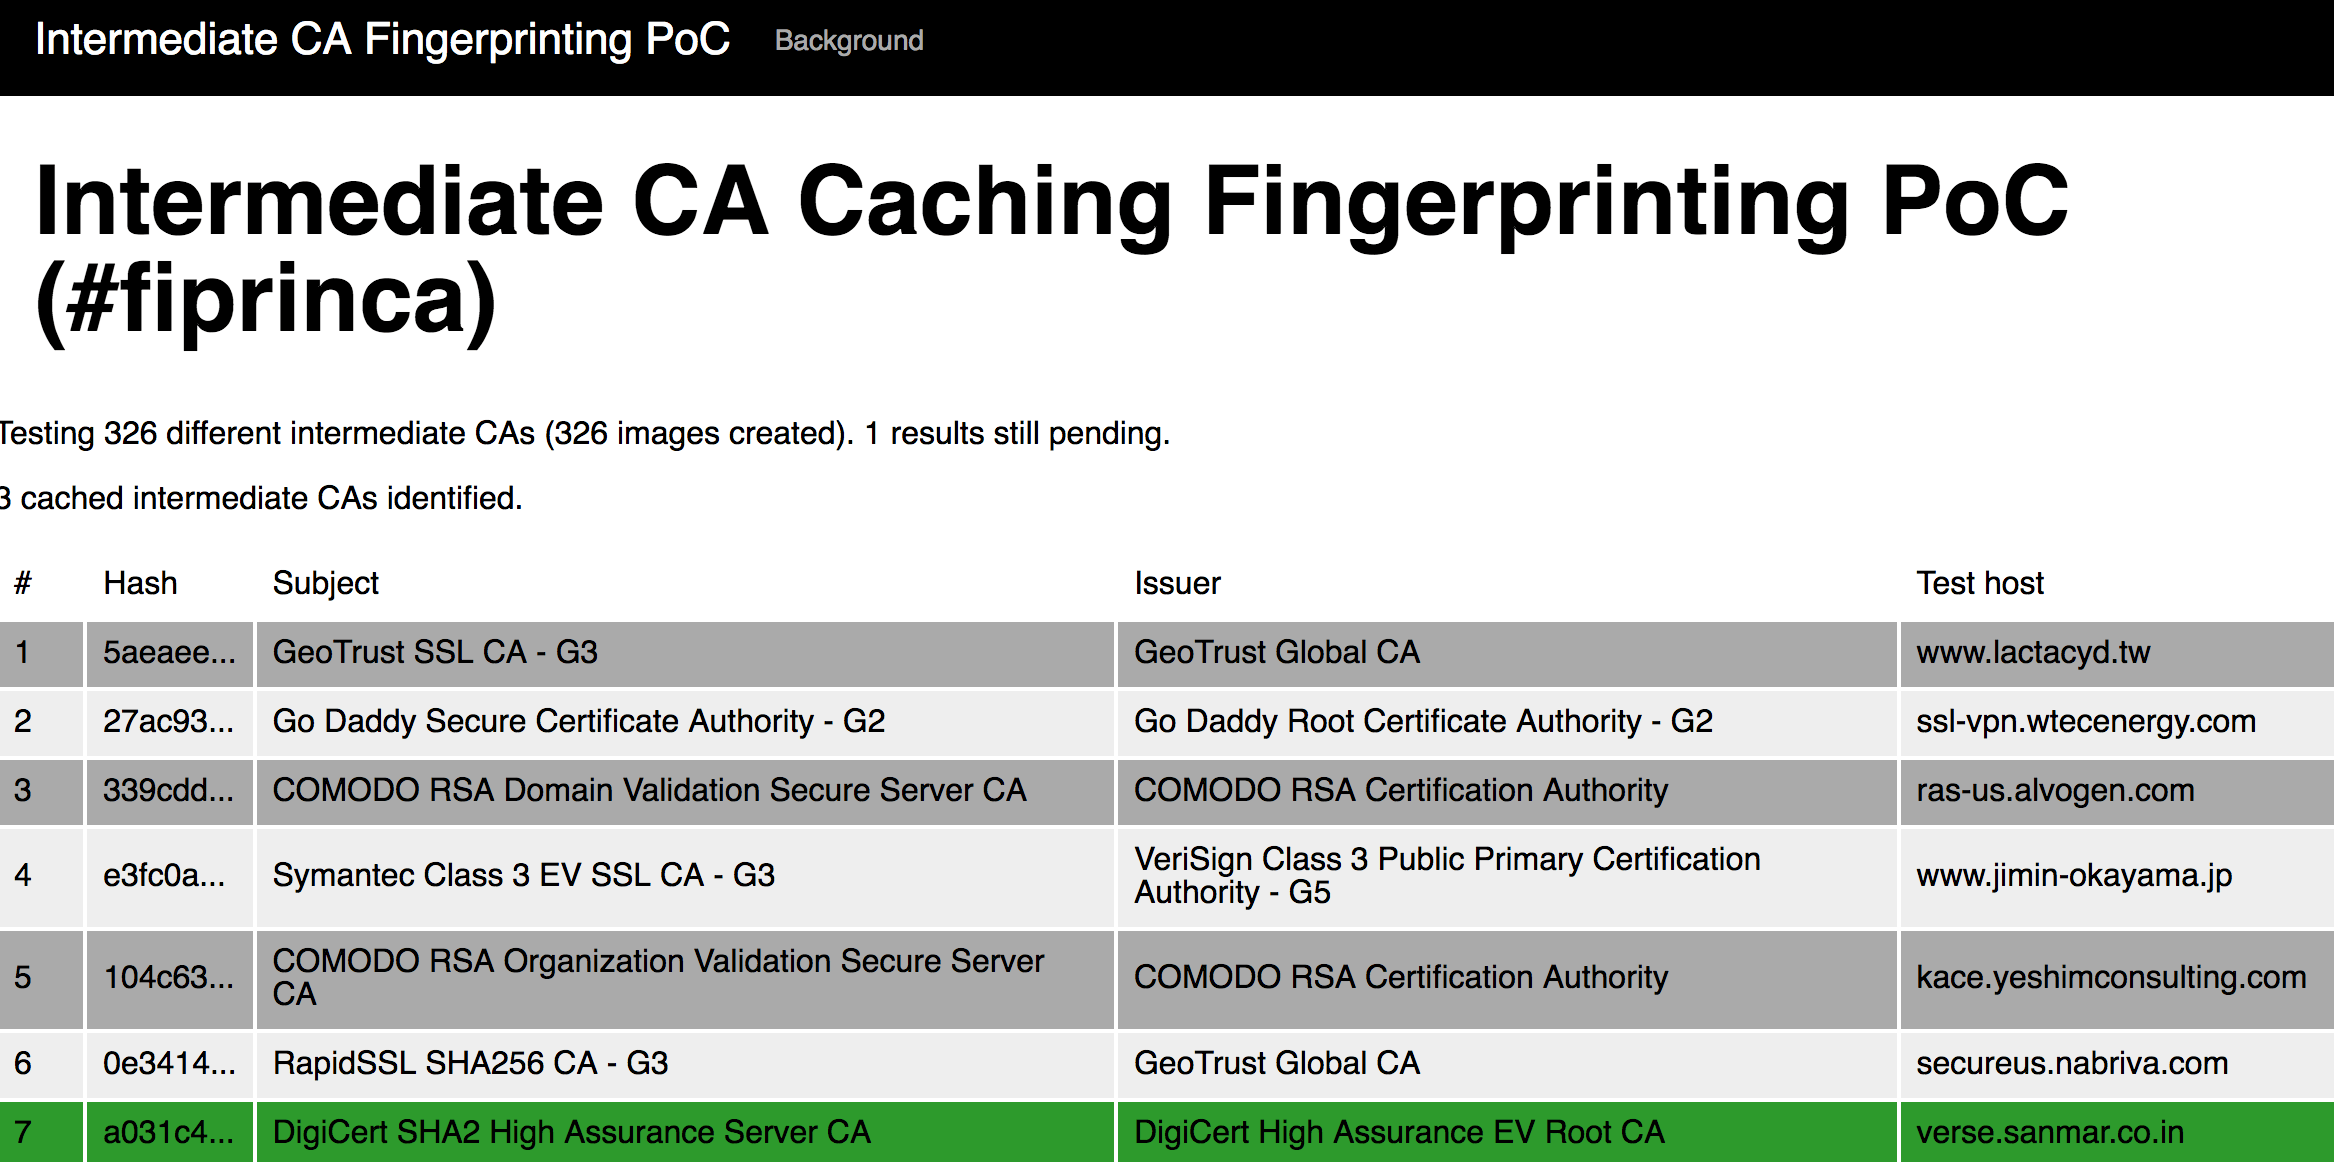 Intermediate Ca Caching Could Be Used To Fingerprint Firefox Users